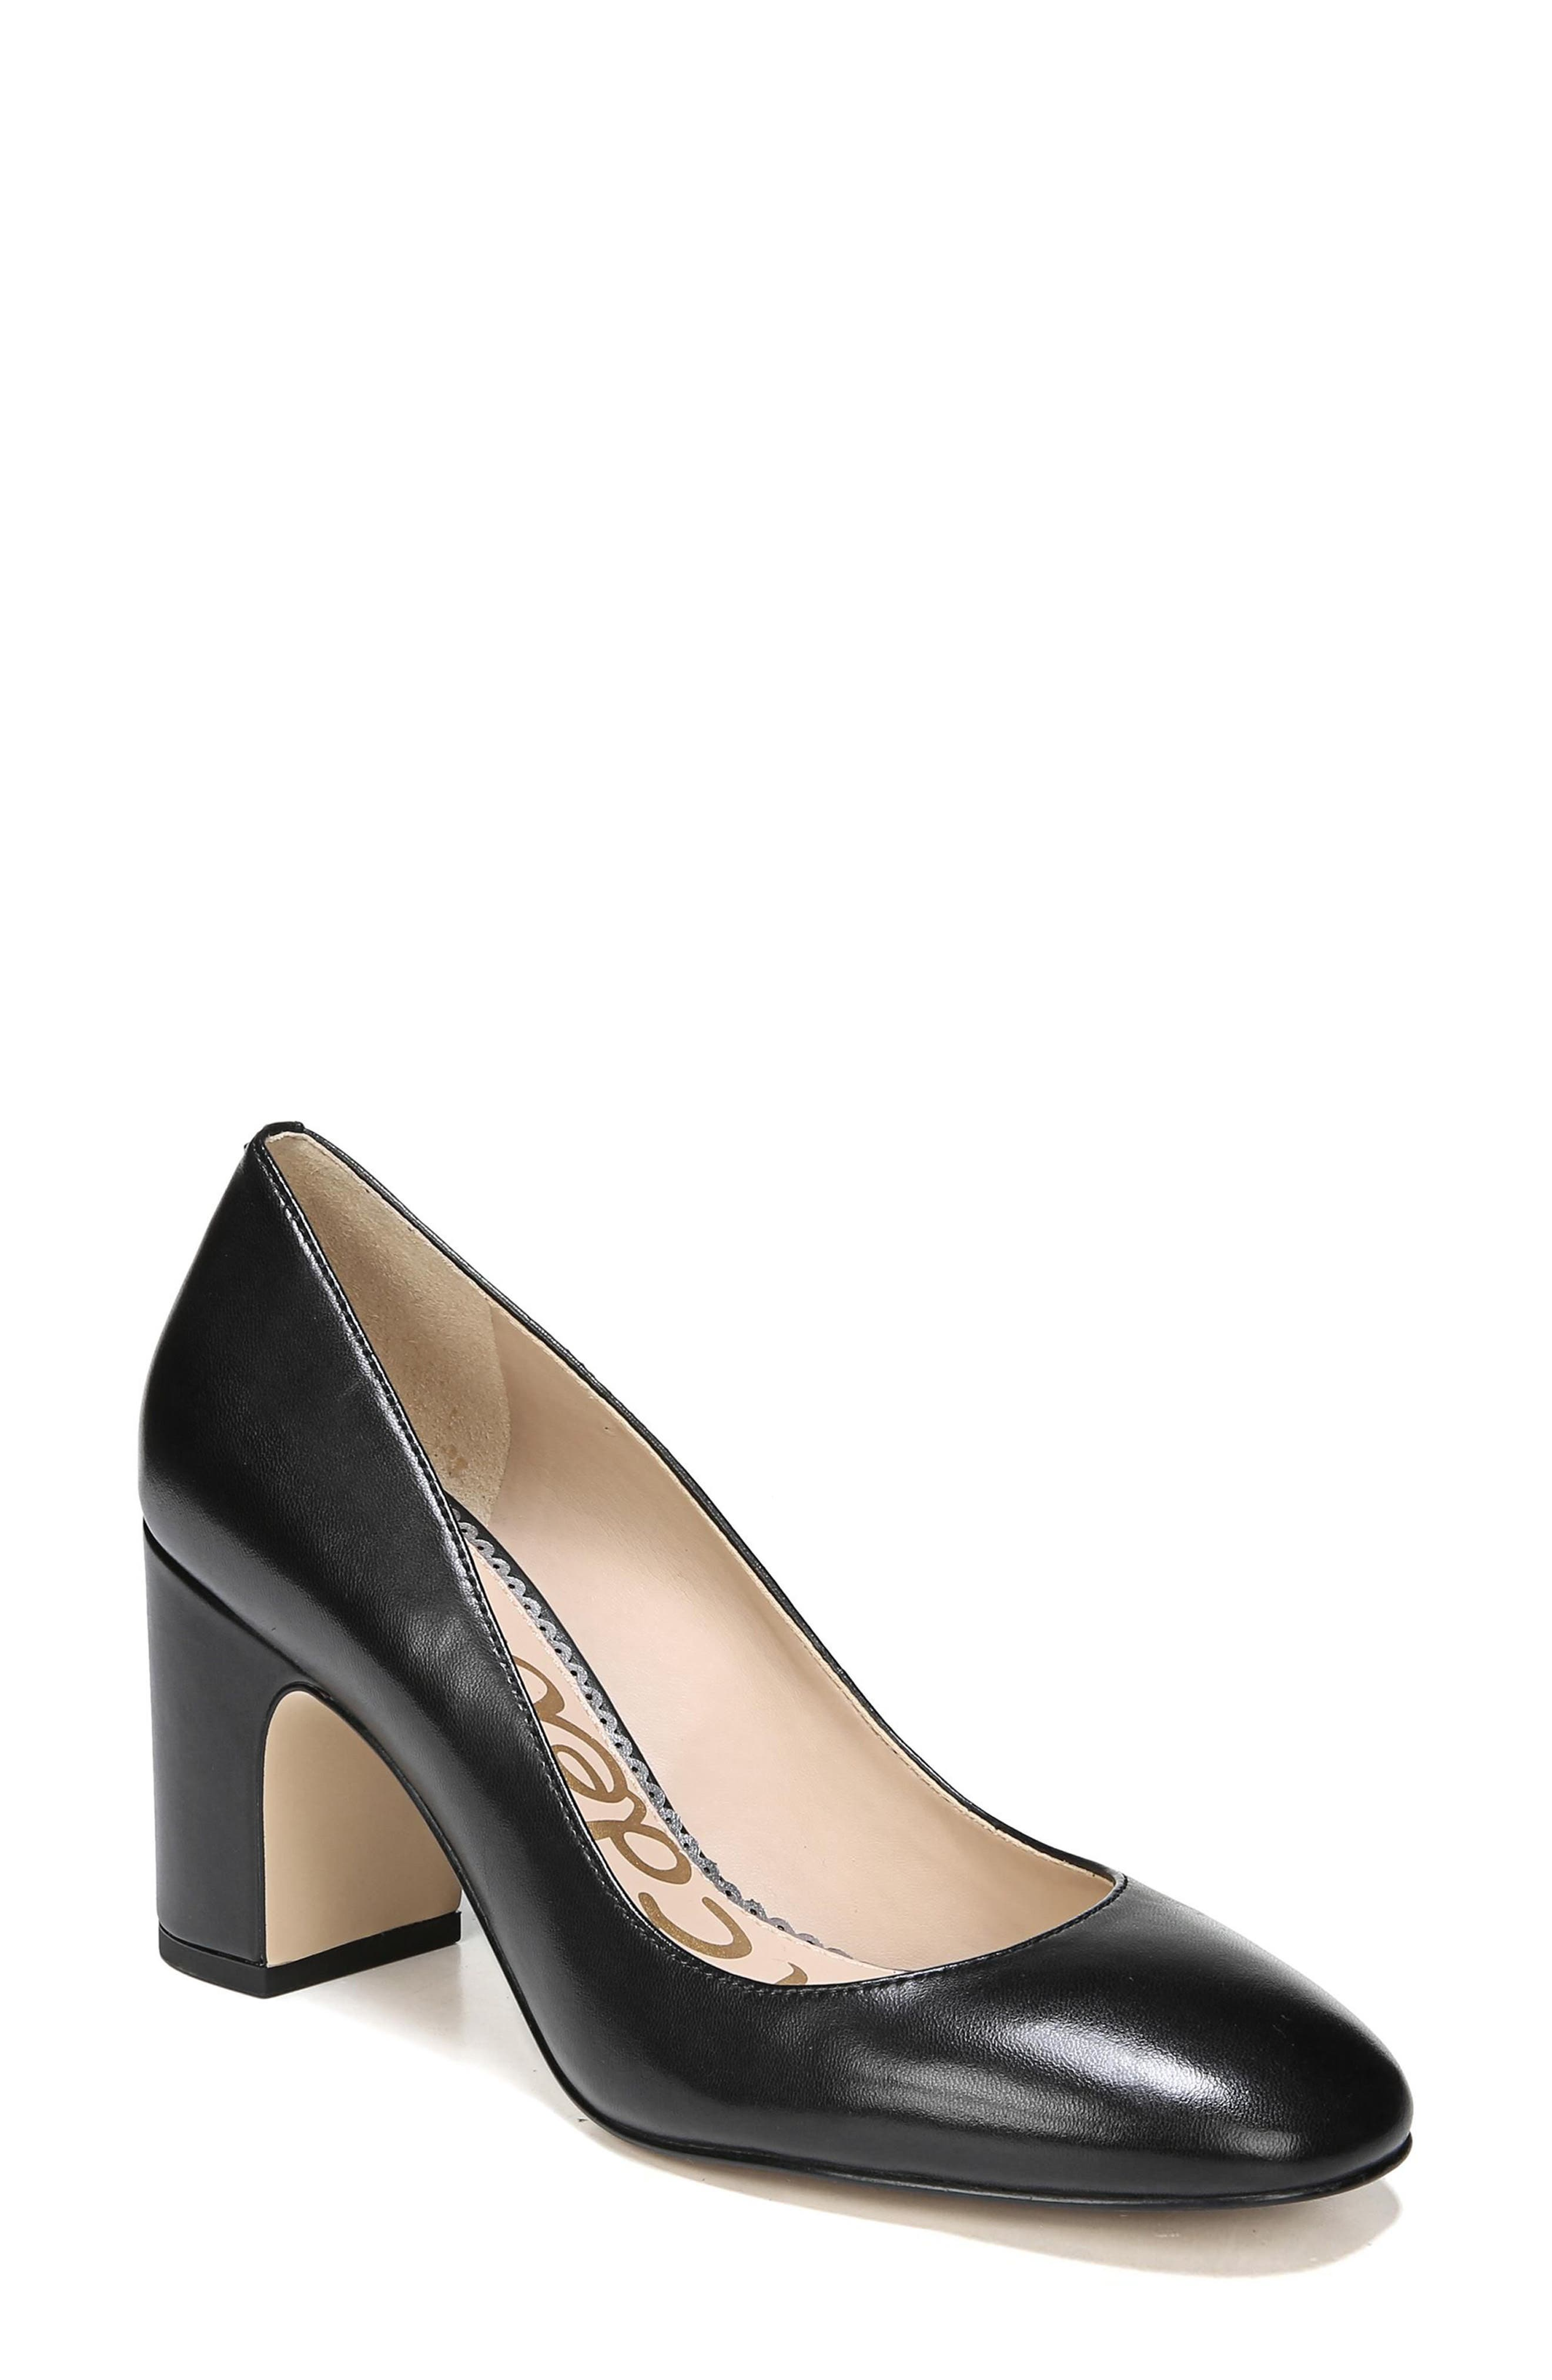 Alternate Image 1 Selected - Sam Edelman Junie Pump (Women)